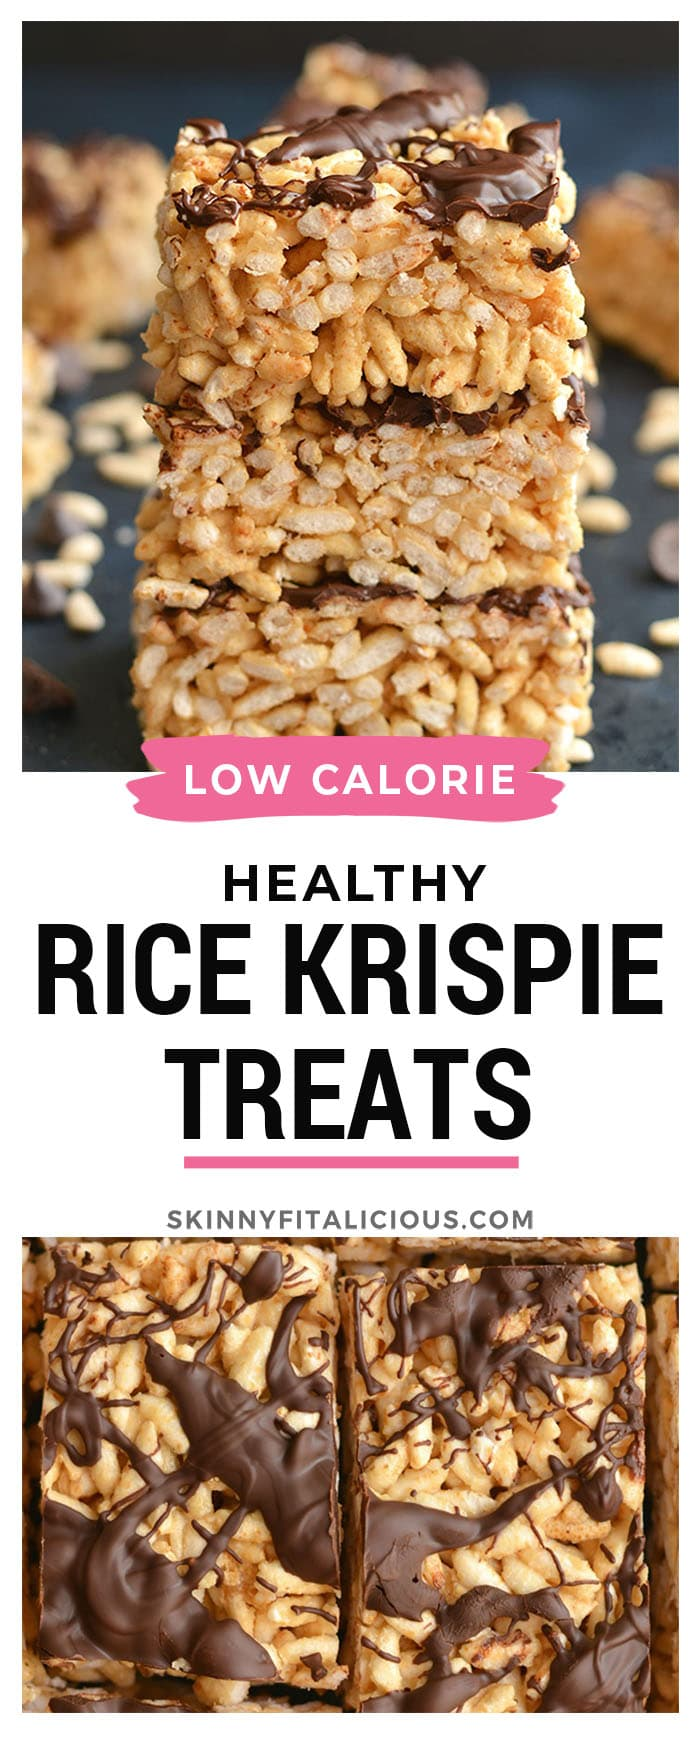 Healthy Rice Krispie Treats! Made with 3 ingredients, these no bake snacks are a healthy version of a classic favorite. Great as a post workout snack, a snack to take with you on the go, or an after dinner treat. Gluten Free + Low Calorie!